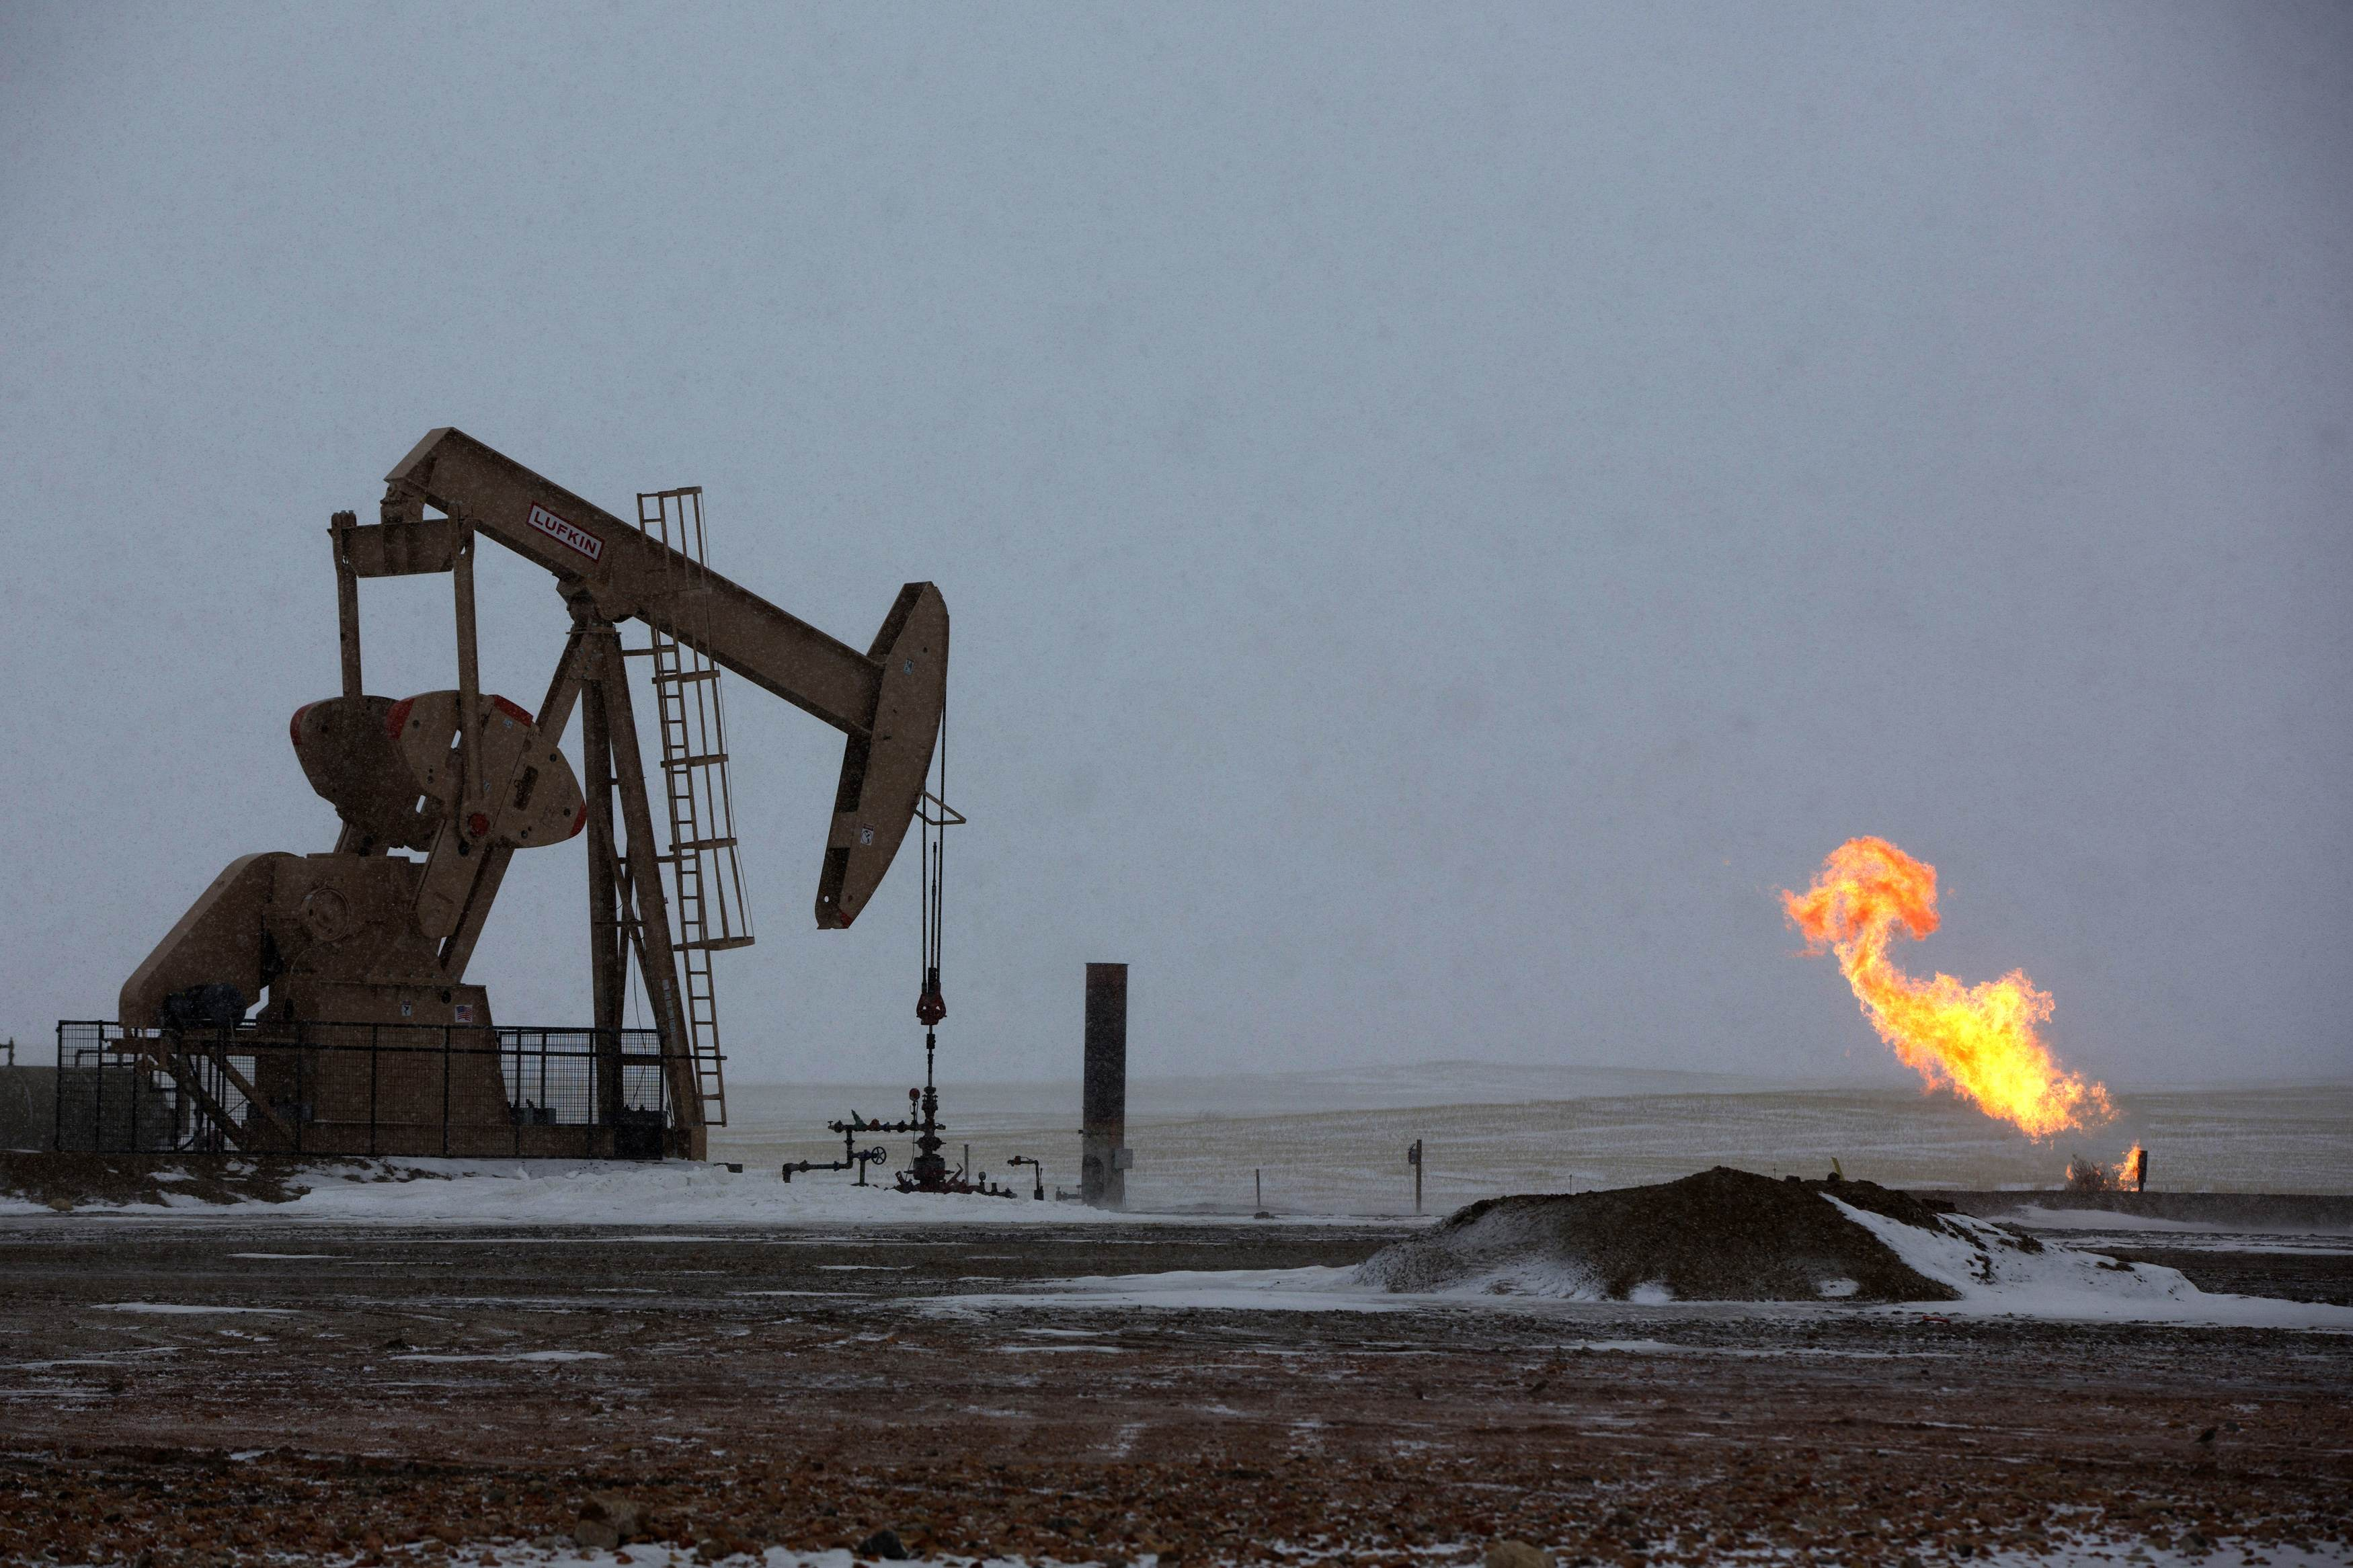 Natural gas flares are seen at an oil pump site outside of Williston, North Dakota. REUTERS/Shannon Stapleton